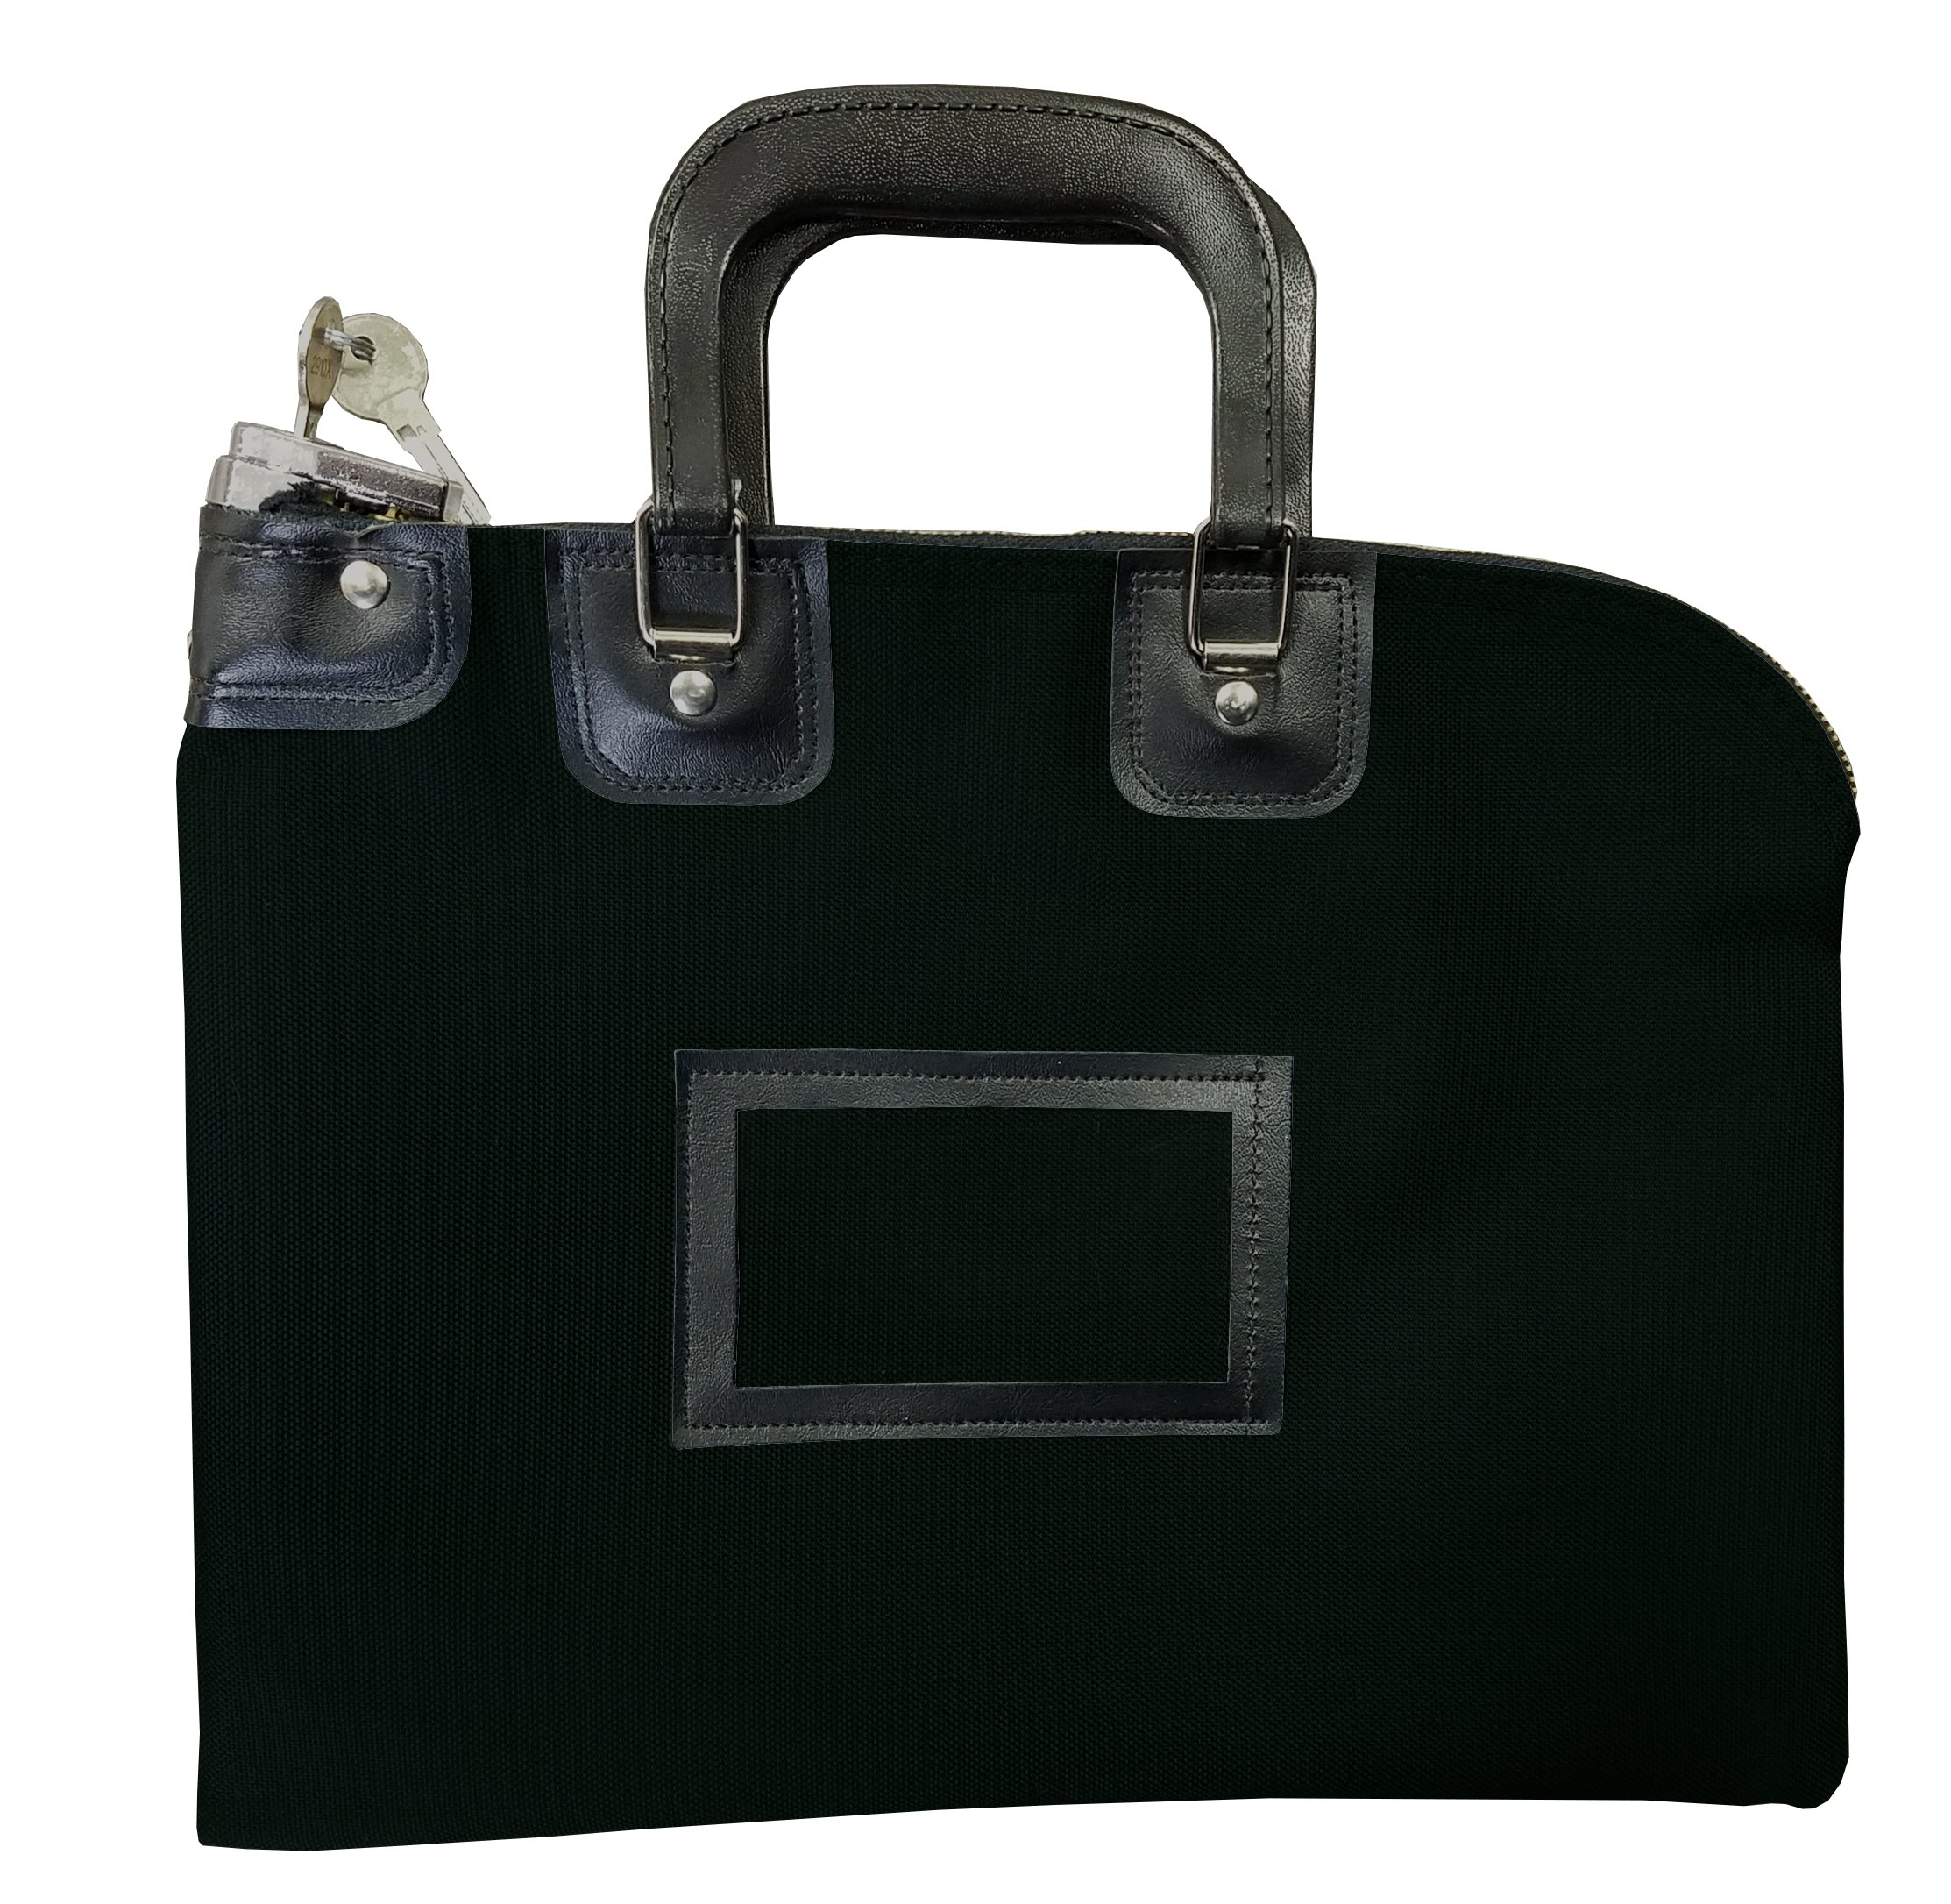 Fire Resistant Locking Security Bag (Navy Blue)